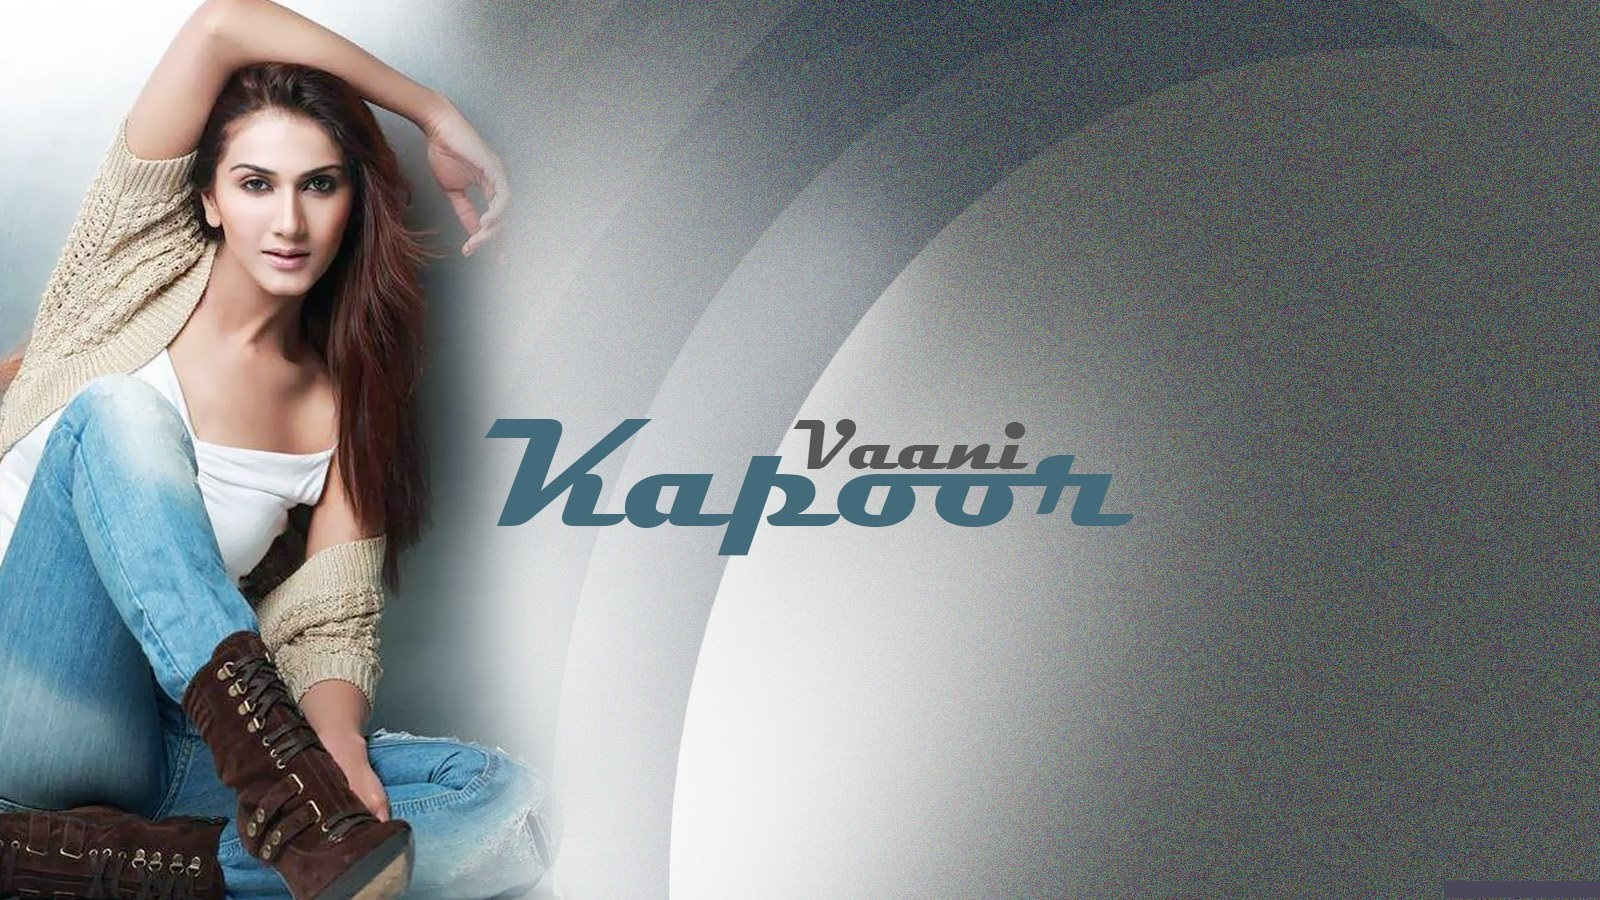 Vaani kapoor wallpaper